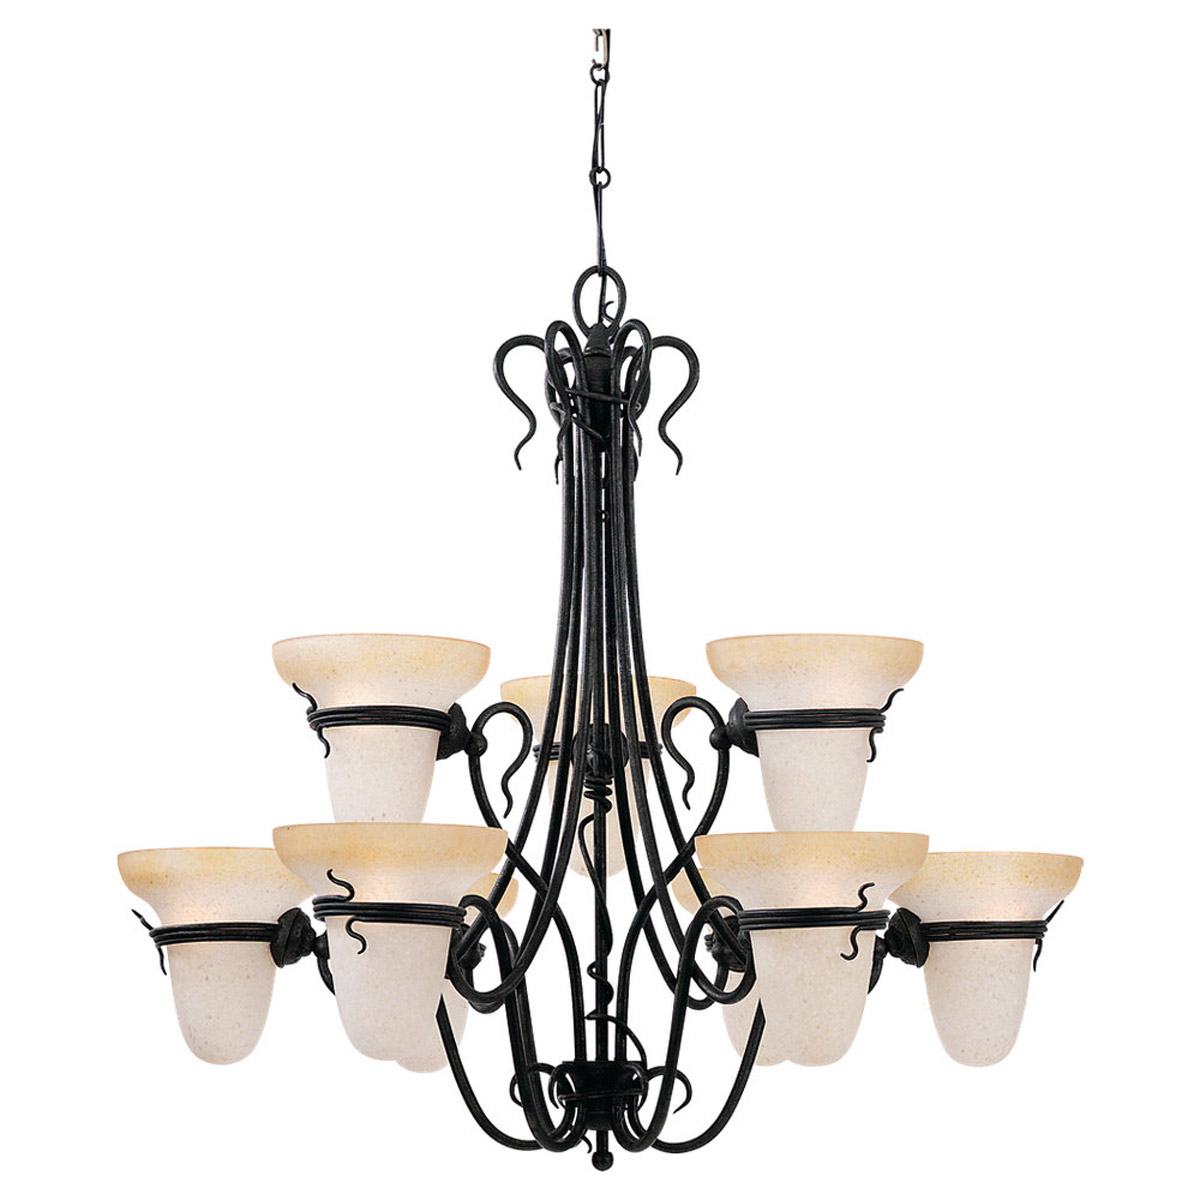 Sea Gull Lighting Saranac Lake 9 Light Chandelier in Forged Iron 3212-185 photo